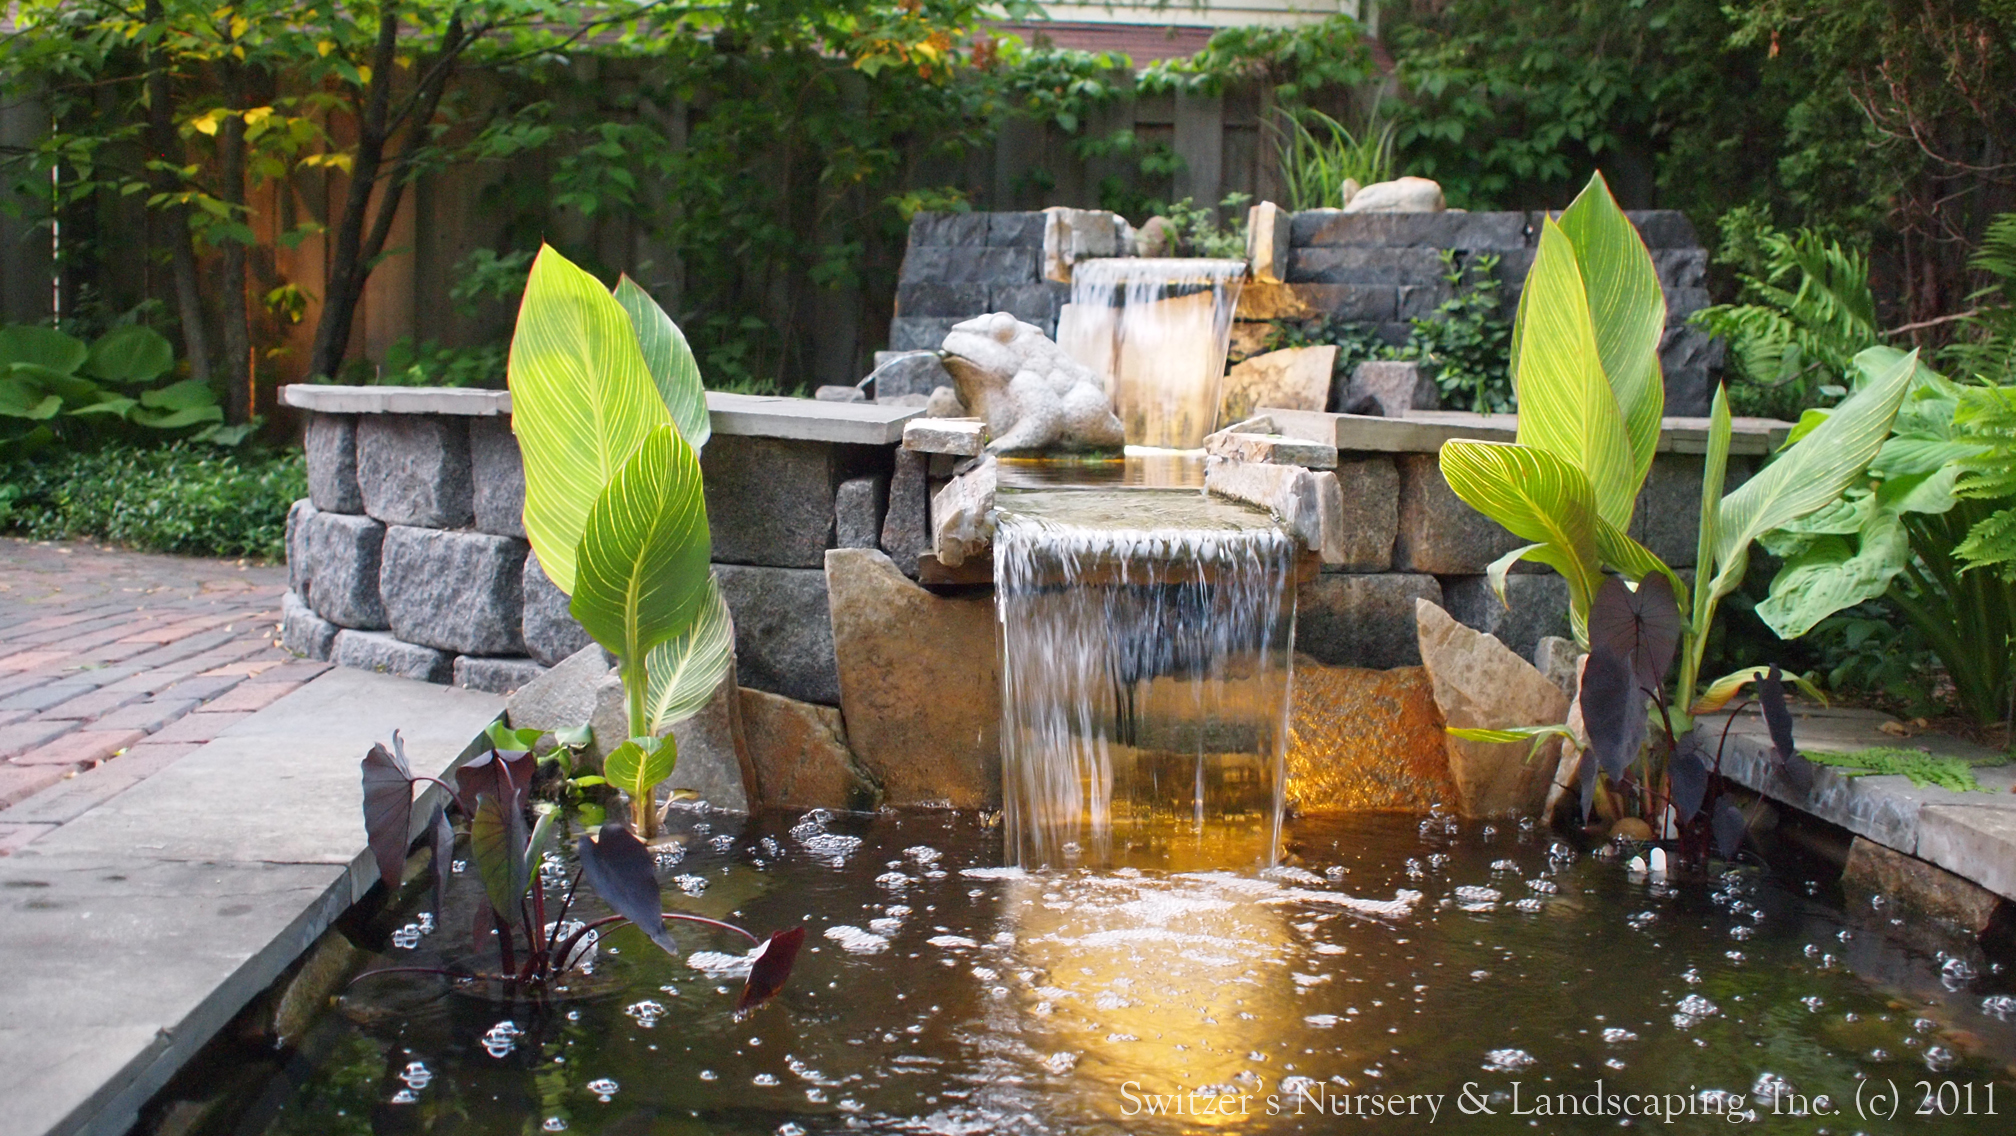 Minnesota landscape design inspired by bali natural for Water garden landscaping